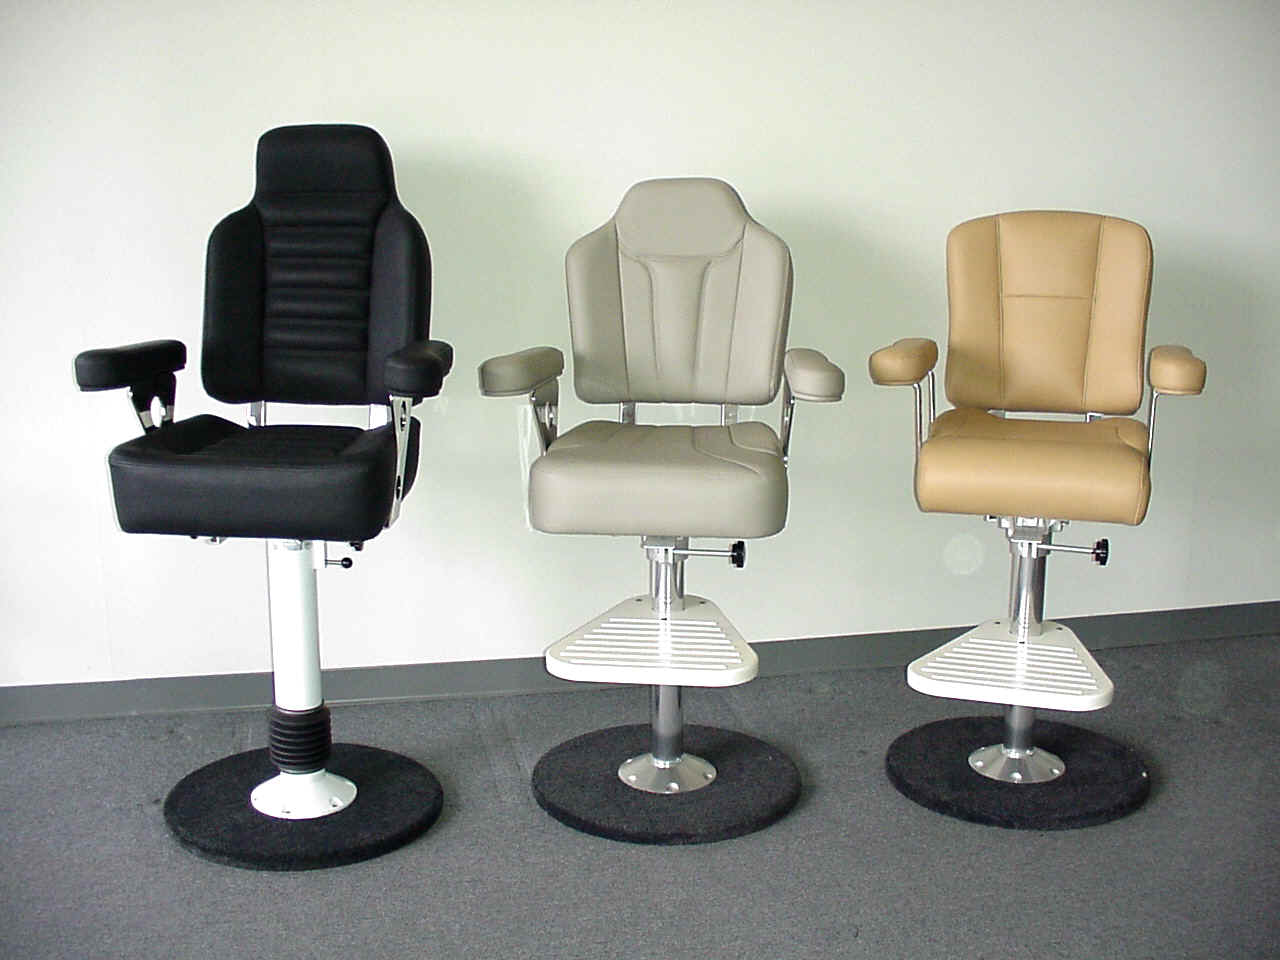 HAND CRAFTED HELM CHAIRS & SEAFURNITURE